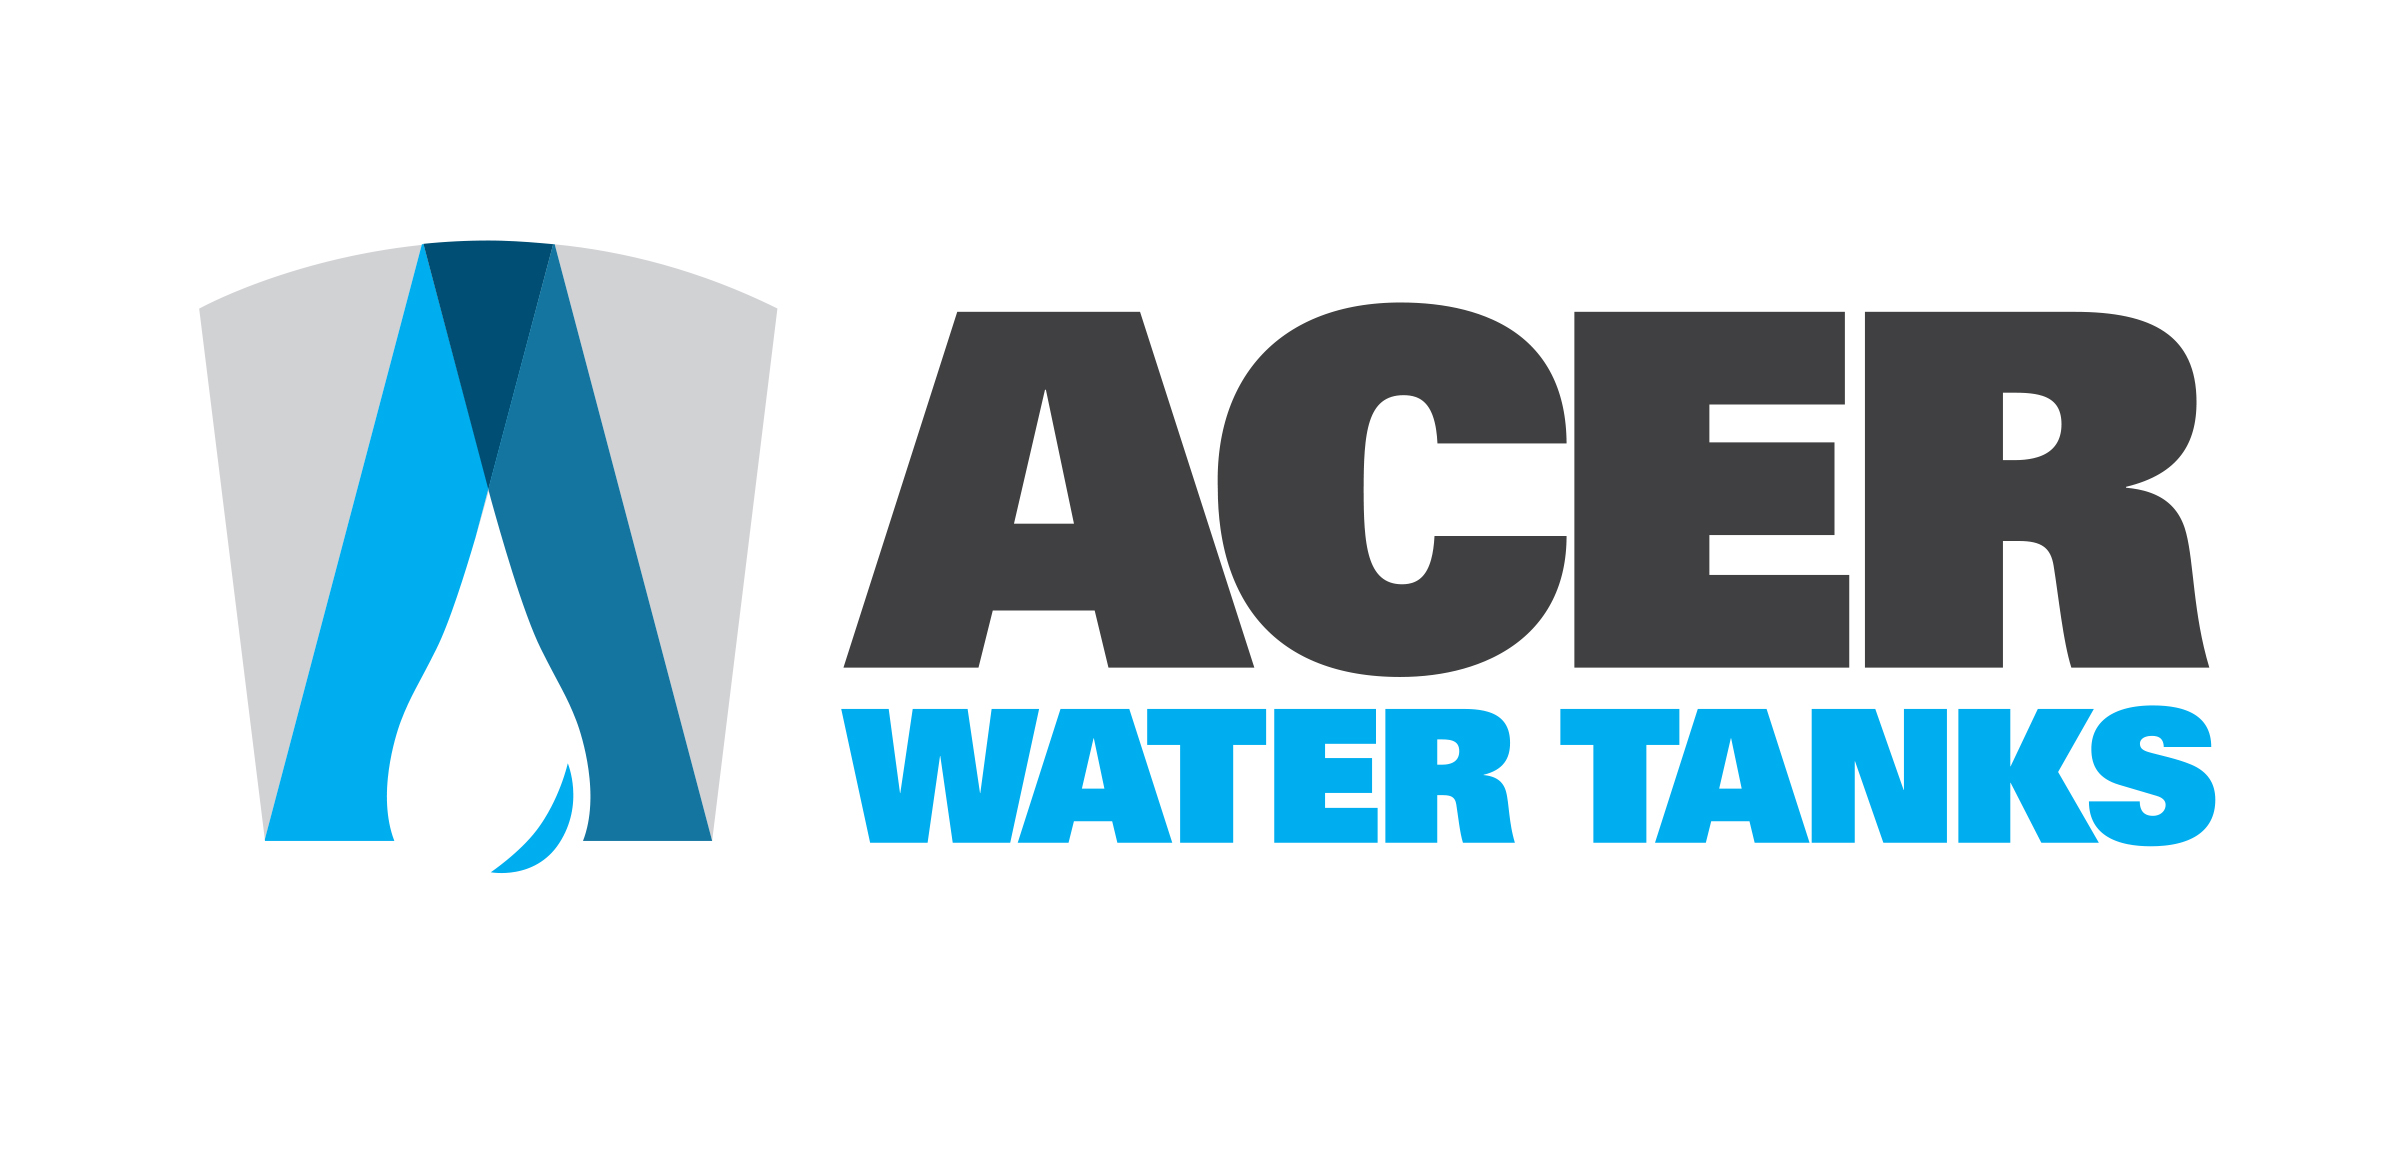 Acer water tanks Map and Data Portal | acer water tanks